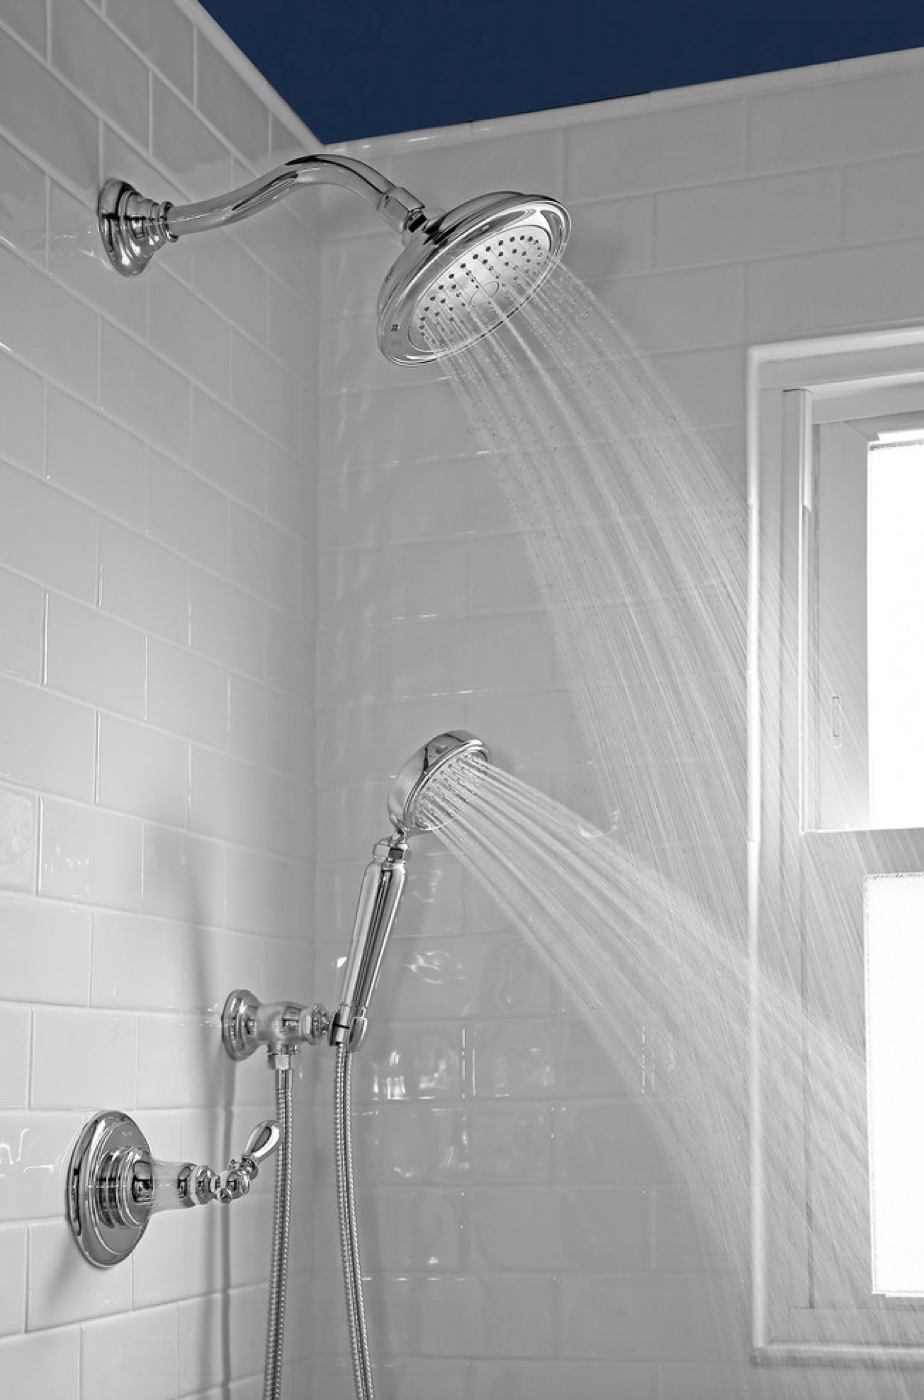 Kohler Artifacts This Is The Type Of Shower Fixture We Like Not Necessarily Style And Color Shower Fixtures Bathroom Shower Bases Bath Faucet